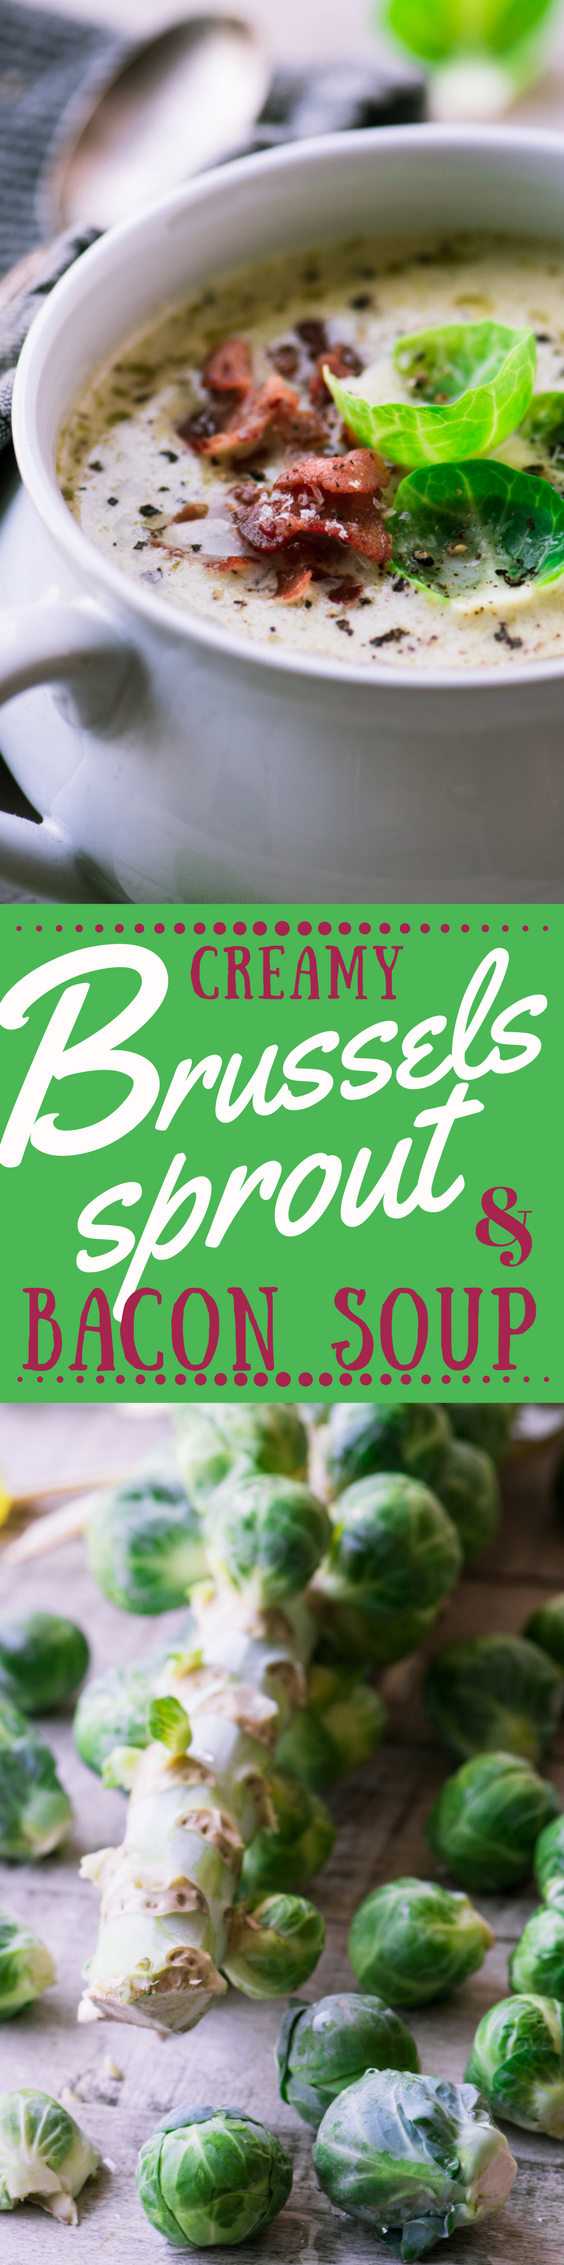 My Cream of Brussels Sprout and Bacon Soup is a comforting meal for a chilly night ~ just add a simple salad, hunk of whole grain bread, and a glass of wine ~ theviewfromgreatisland.com #soup #Brusselssprout #bestbrusselssproutrecipe #comfortfood #chowder @creamsoup #lunch #recipe #fallsoup